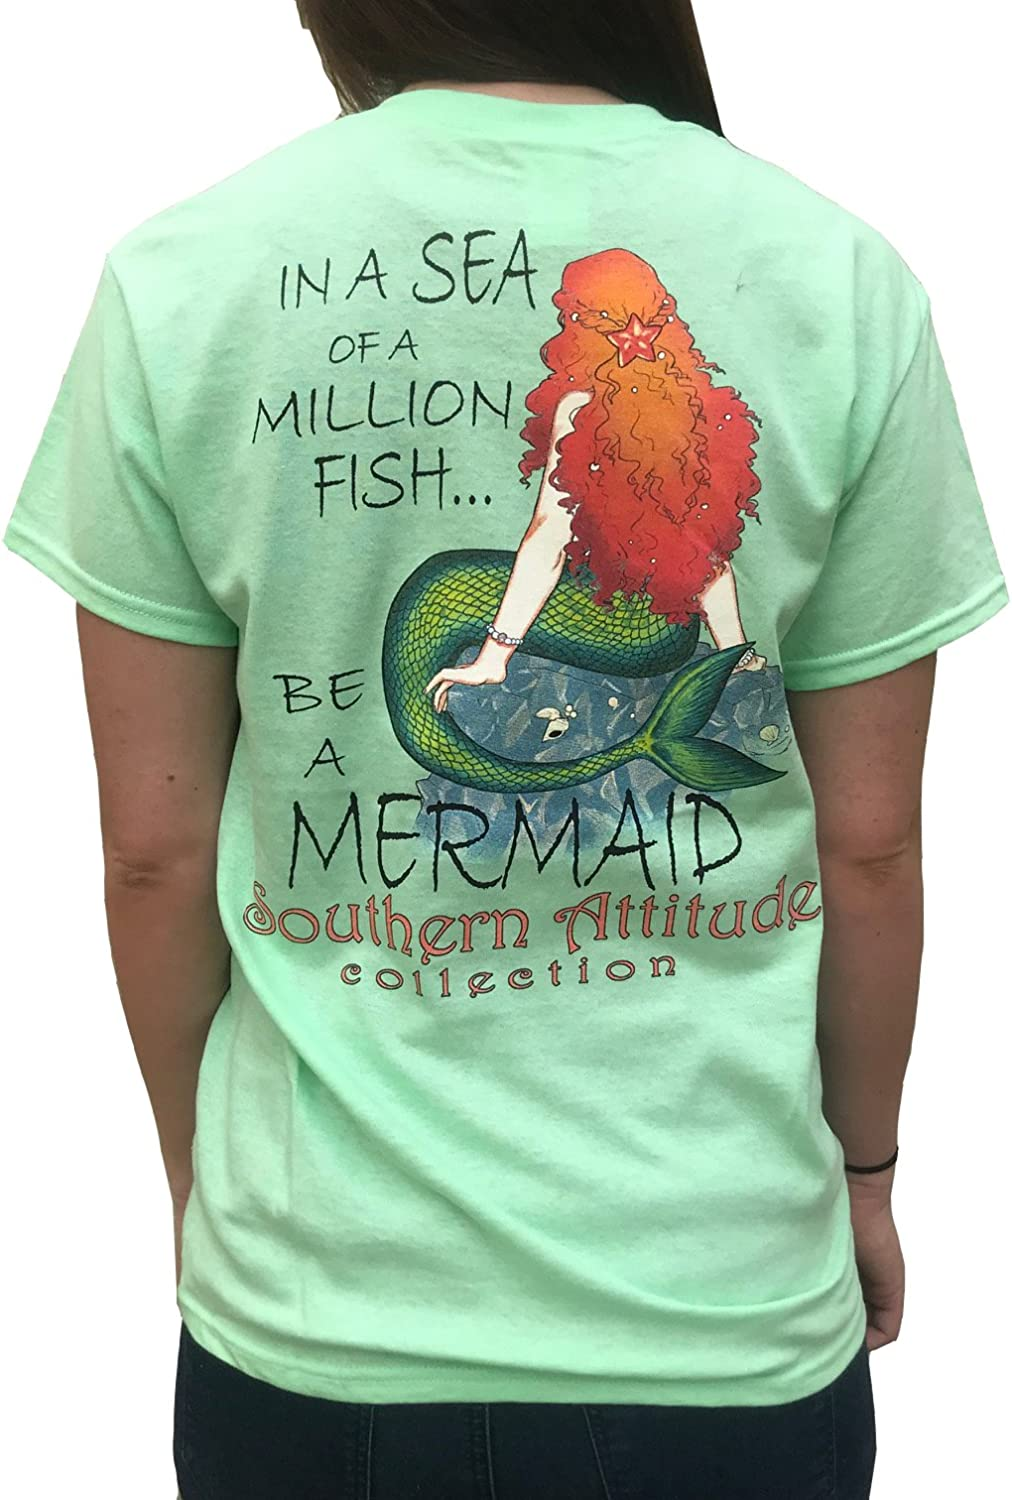 Southern Attitude in A Sea of A Million Fish Be A Mermaid Mint Women's Short Sleeve T-Shirt